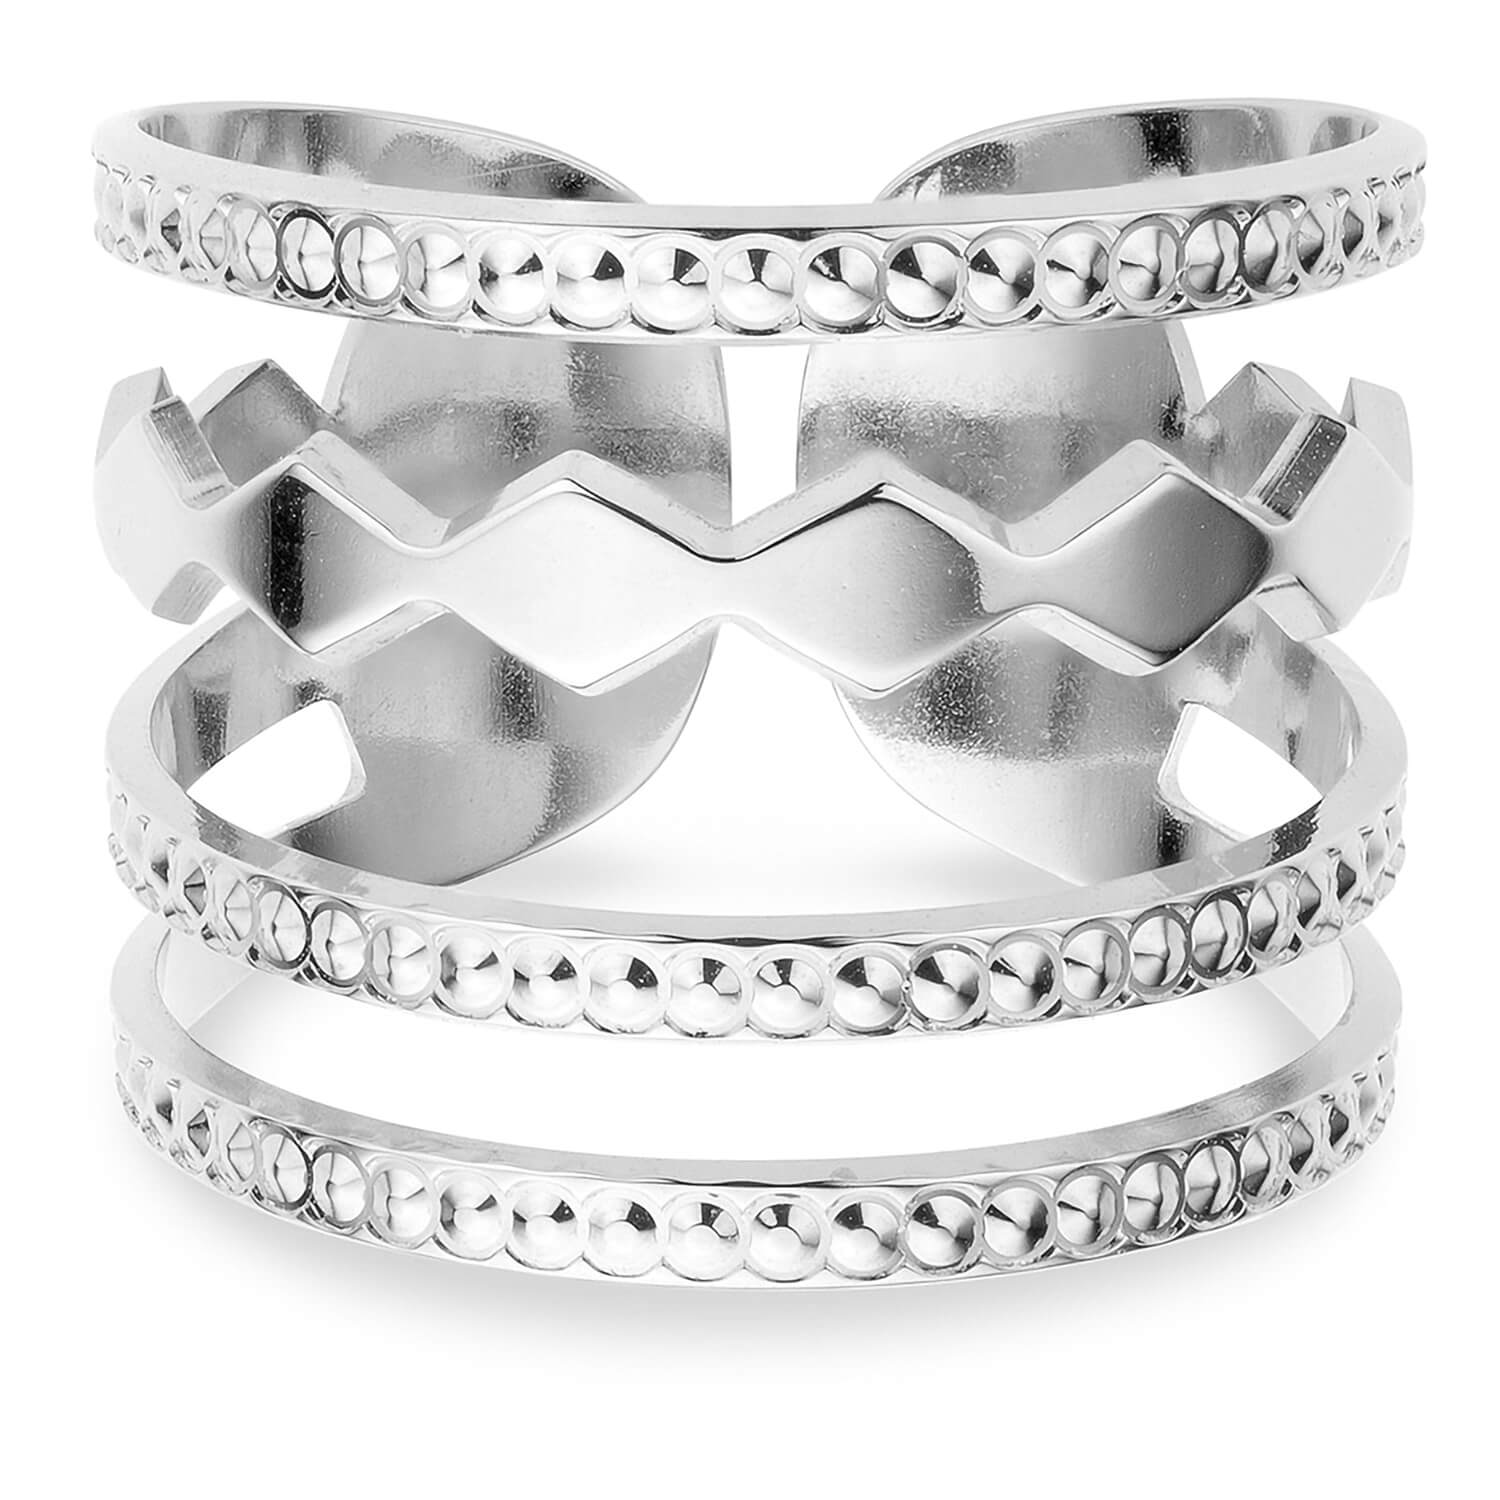 Mya Bay Silver Confetti Ladies Ring